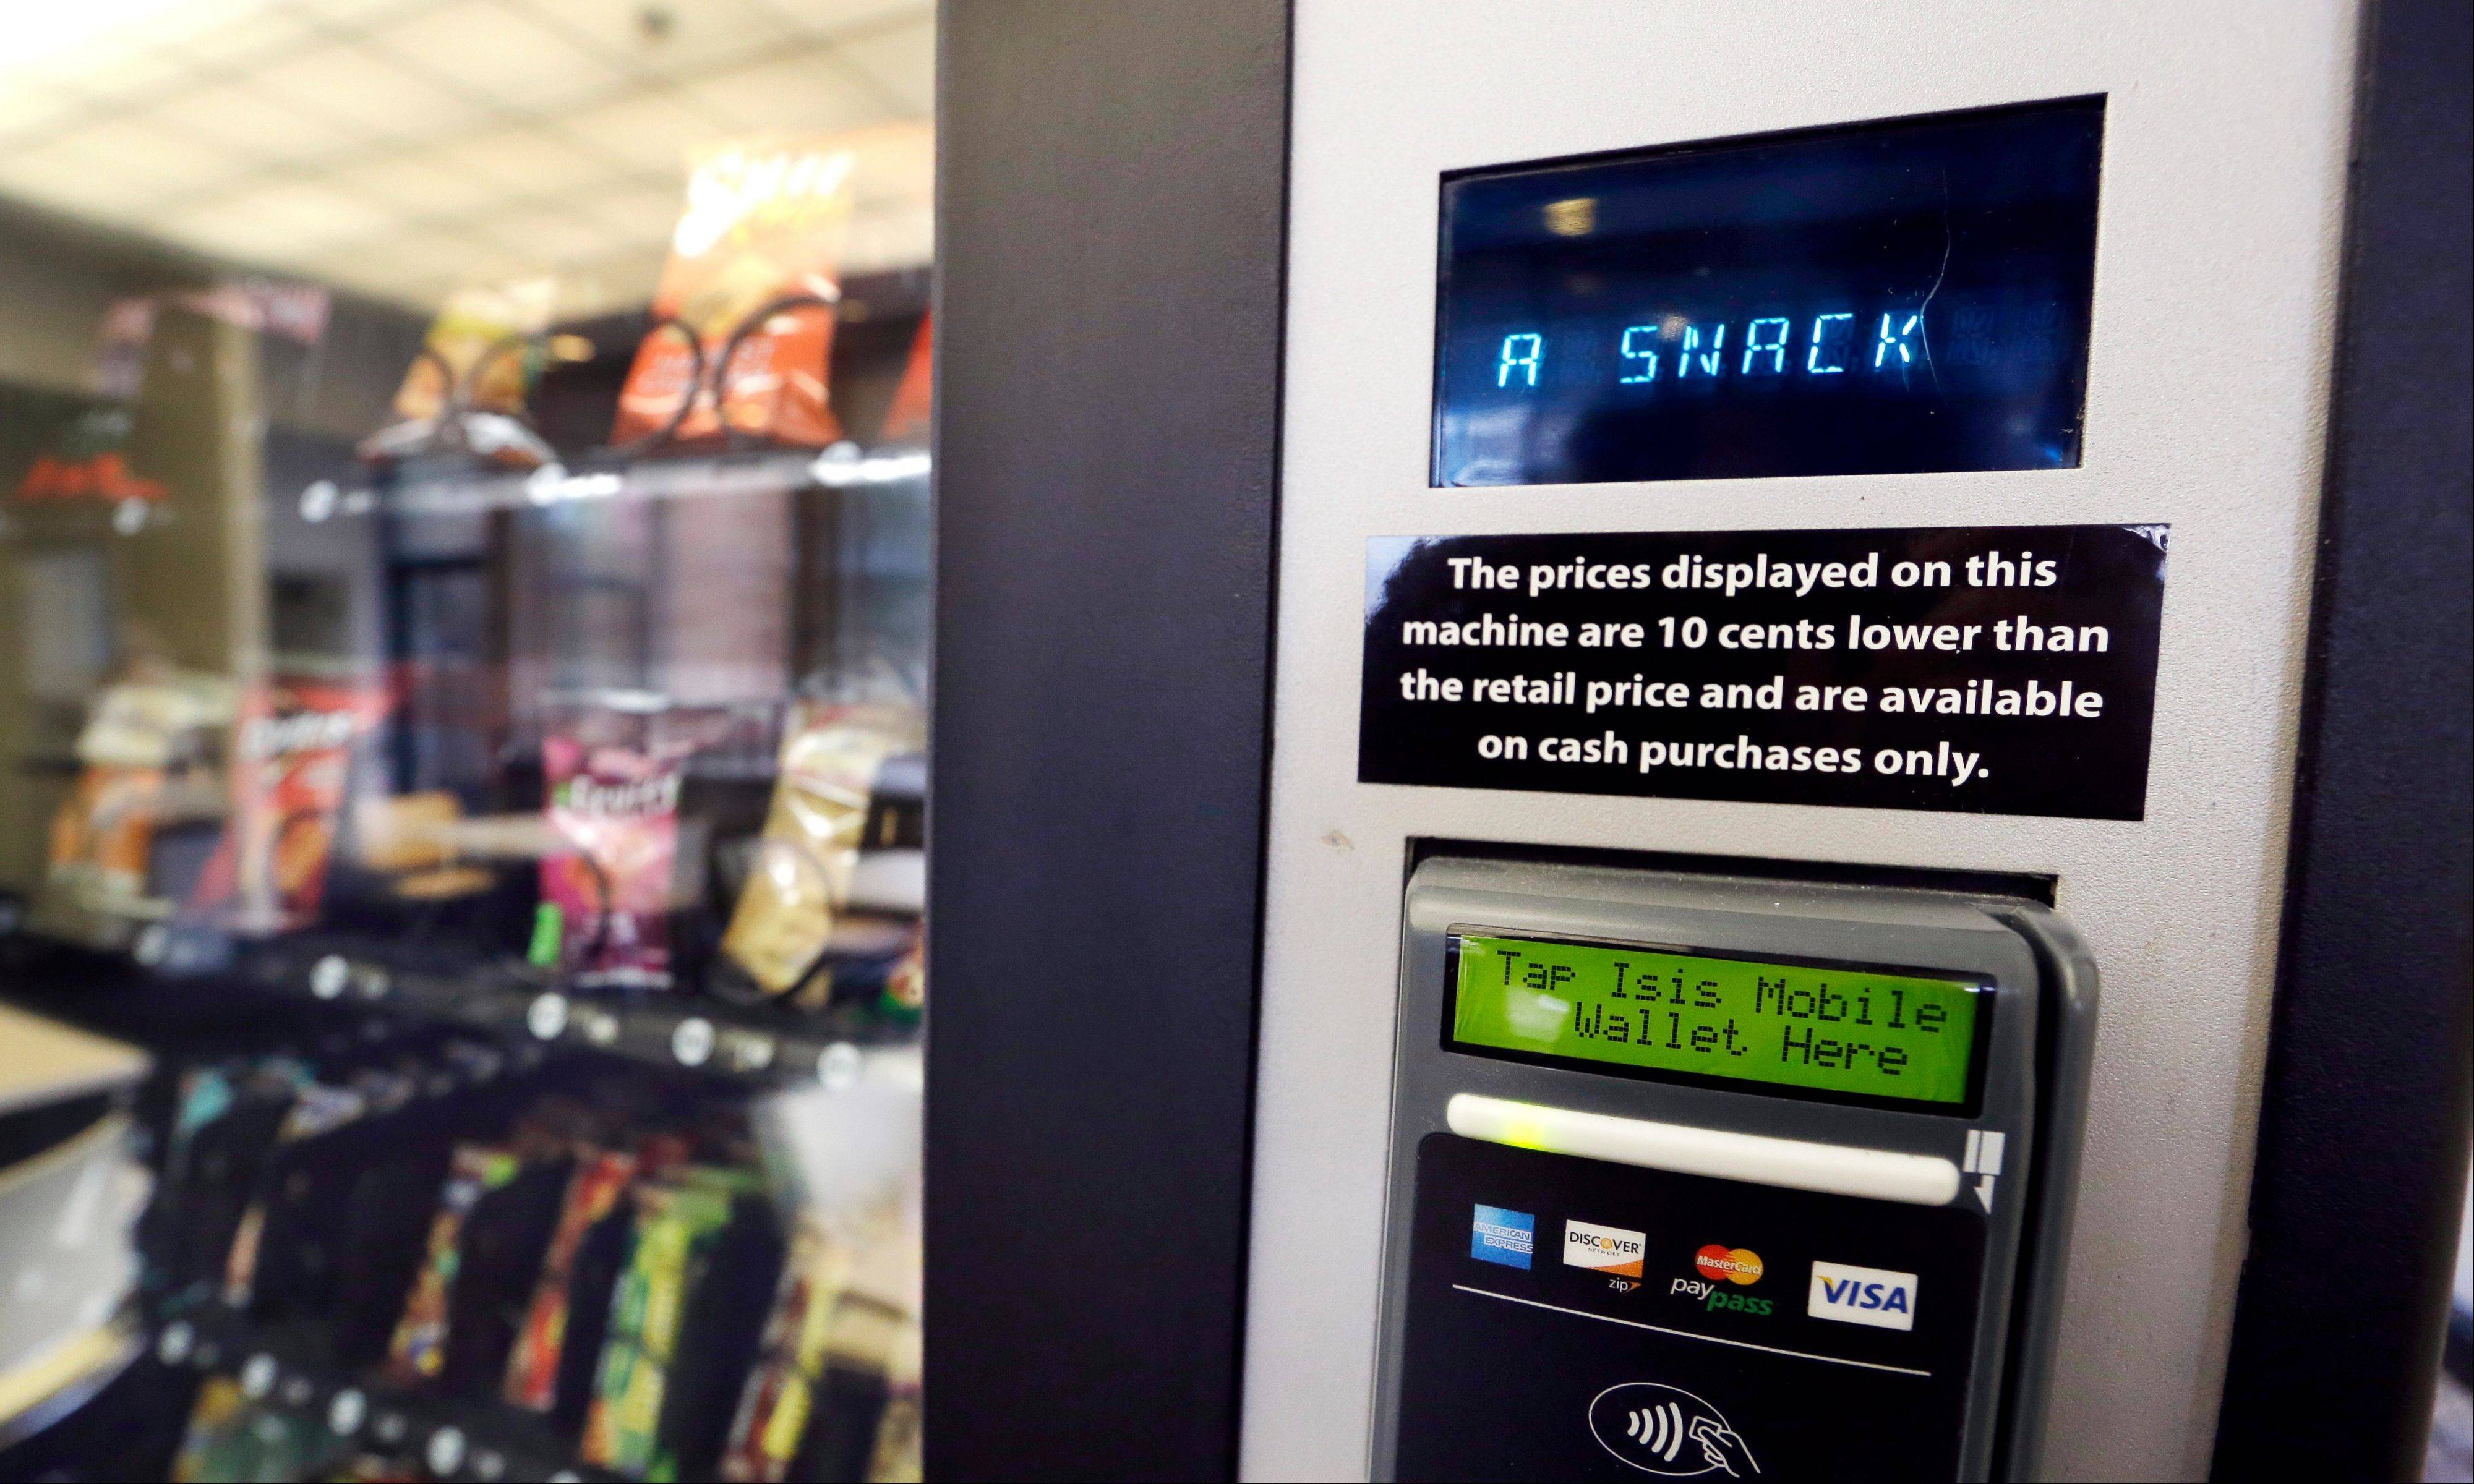 In this Dec. 23, 2013 photo, a vending machine advertises snacks on a small screen on the machine in Seattle. Office workers in search of snacks will be counting calories along with their change under new labeling regulations for vending machines included in President Barack Obama's health care overhaul law. The Food and Drug Administration, which is expected to release final rules early next year, says requiring calorie information to be displayed on roughly 5 million vending machines nationwide will help consumers make healthier choices.